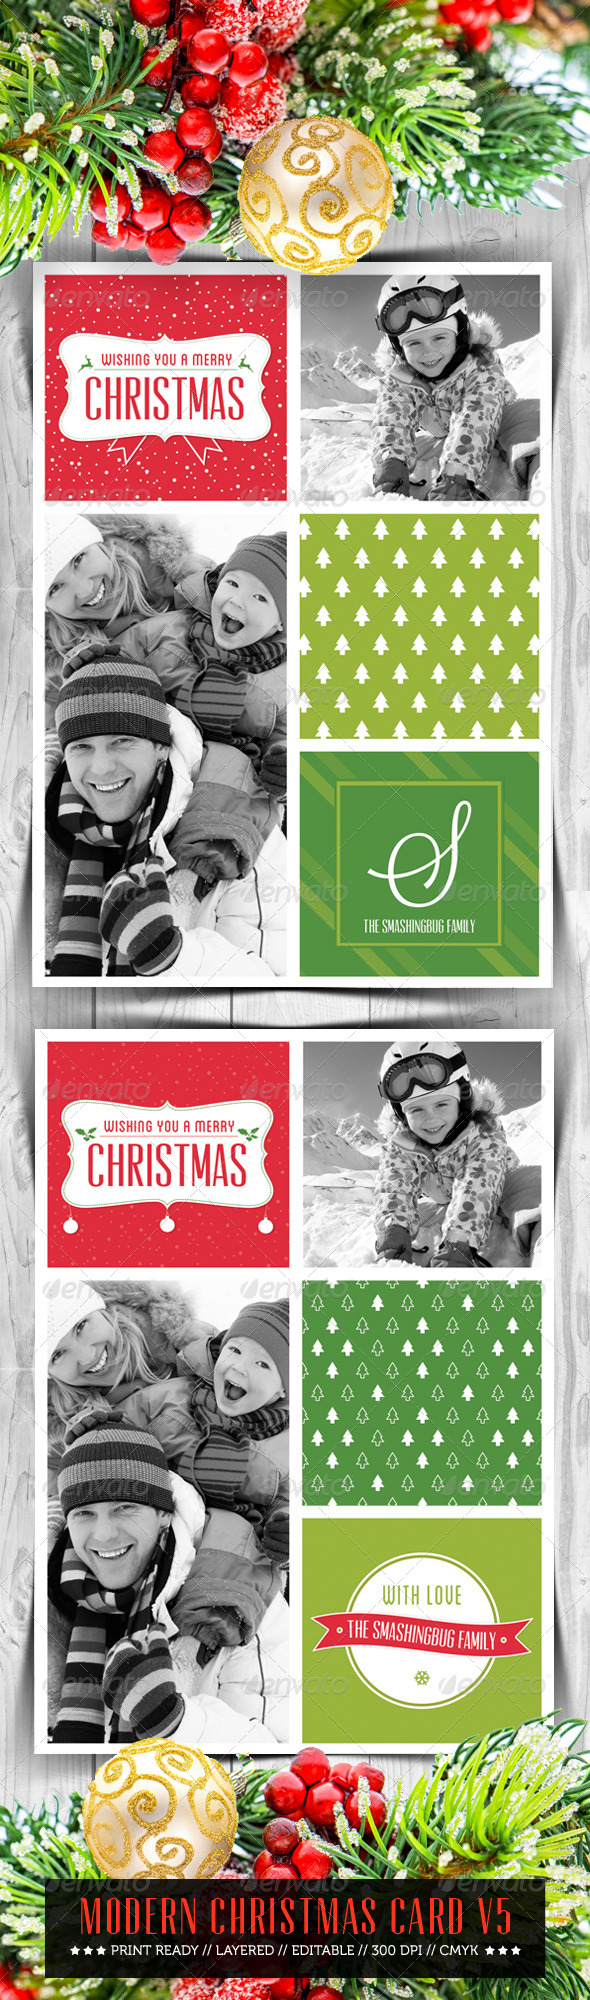 Modern Christmas Card V5 - Holiday Greeting Cards